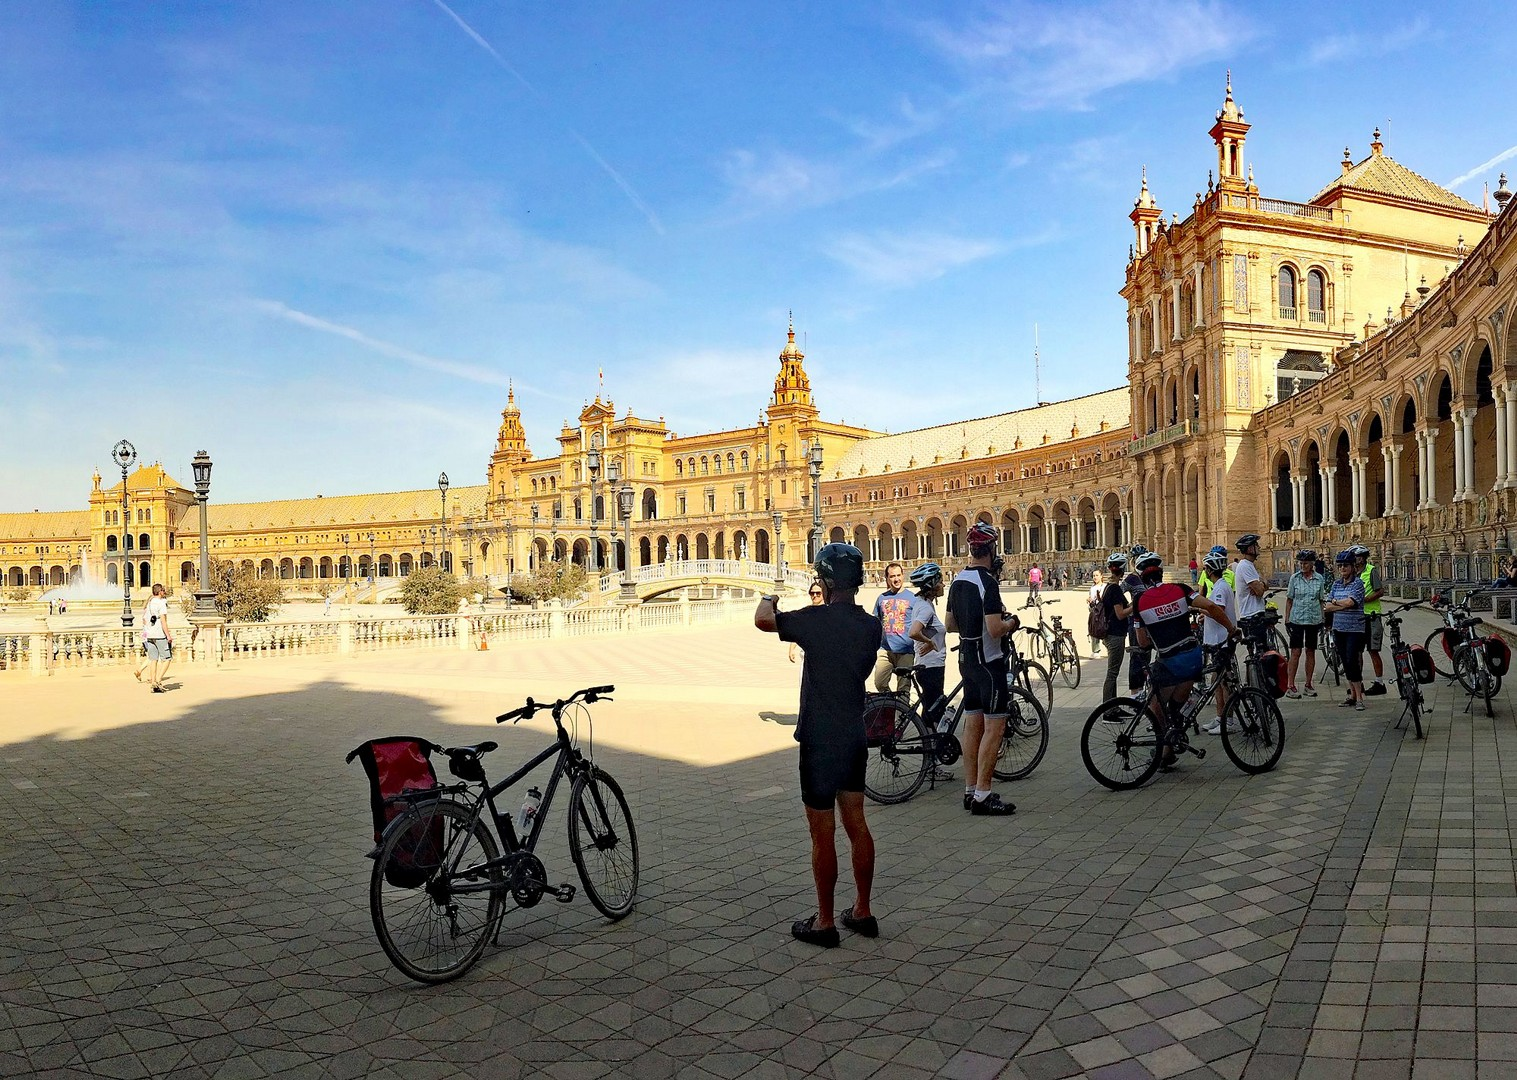 plaza-de-espana-seville-cycling-holiday-in-spain-granada-seville.jpg - Spain - Granada to Seville - Leisure Cycling